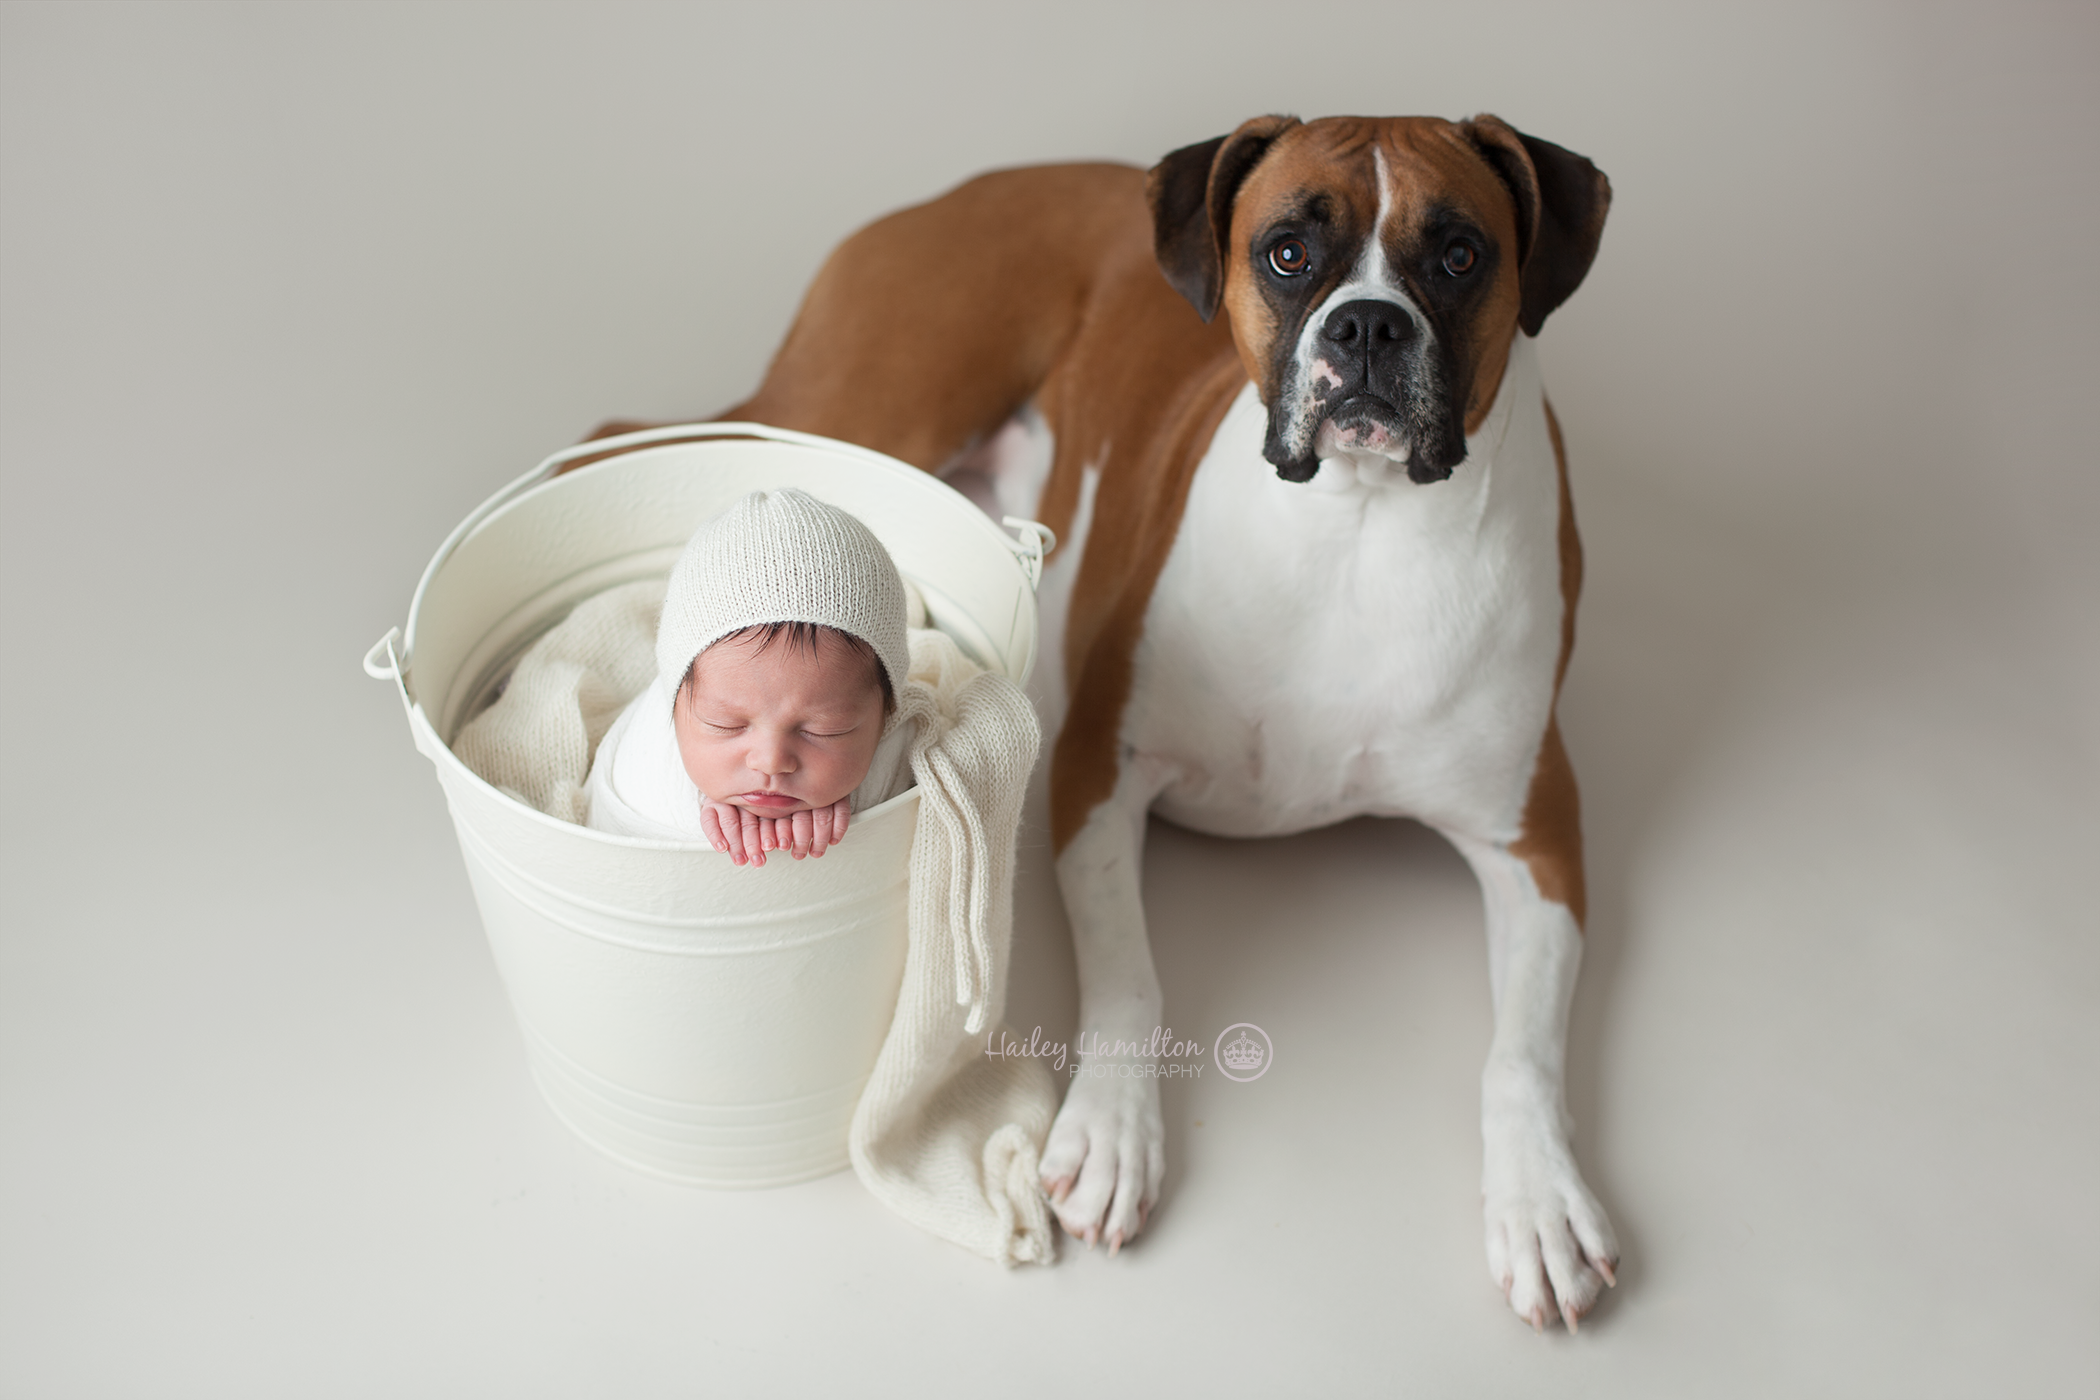 Newborn photography session with pet dog